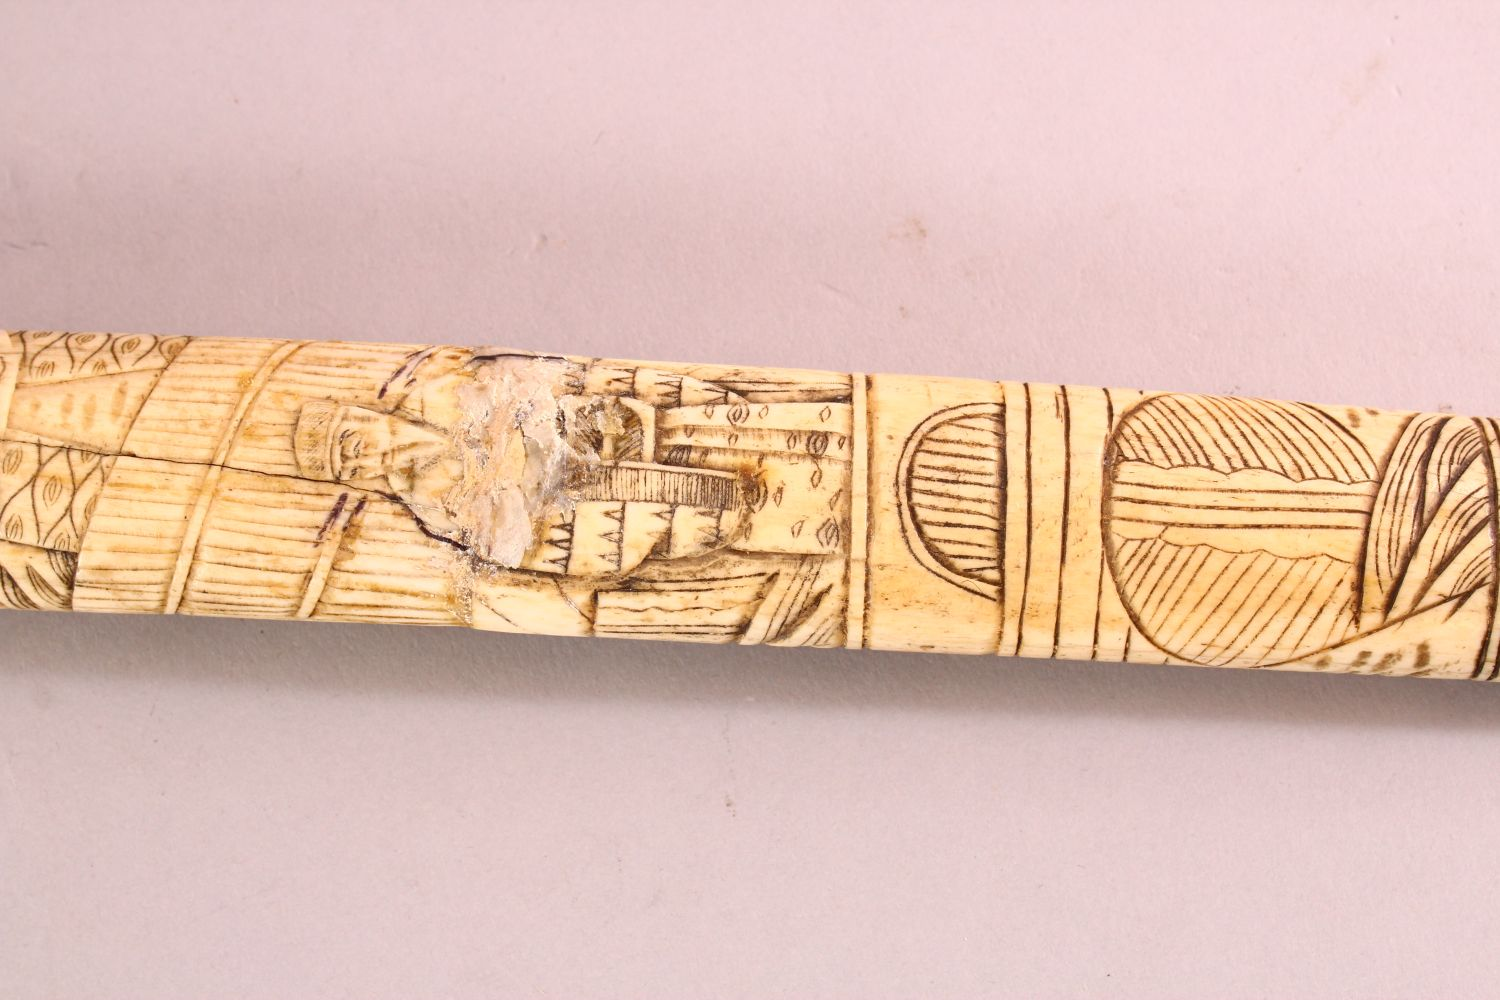 A JAPANESE MEIJI PERIOD SECTIONAL CARVED IVORY SWORD, carved with scenes of figures (AF) 85cm - Image 3 of 7